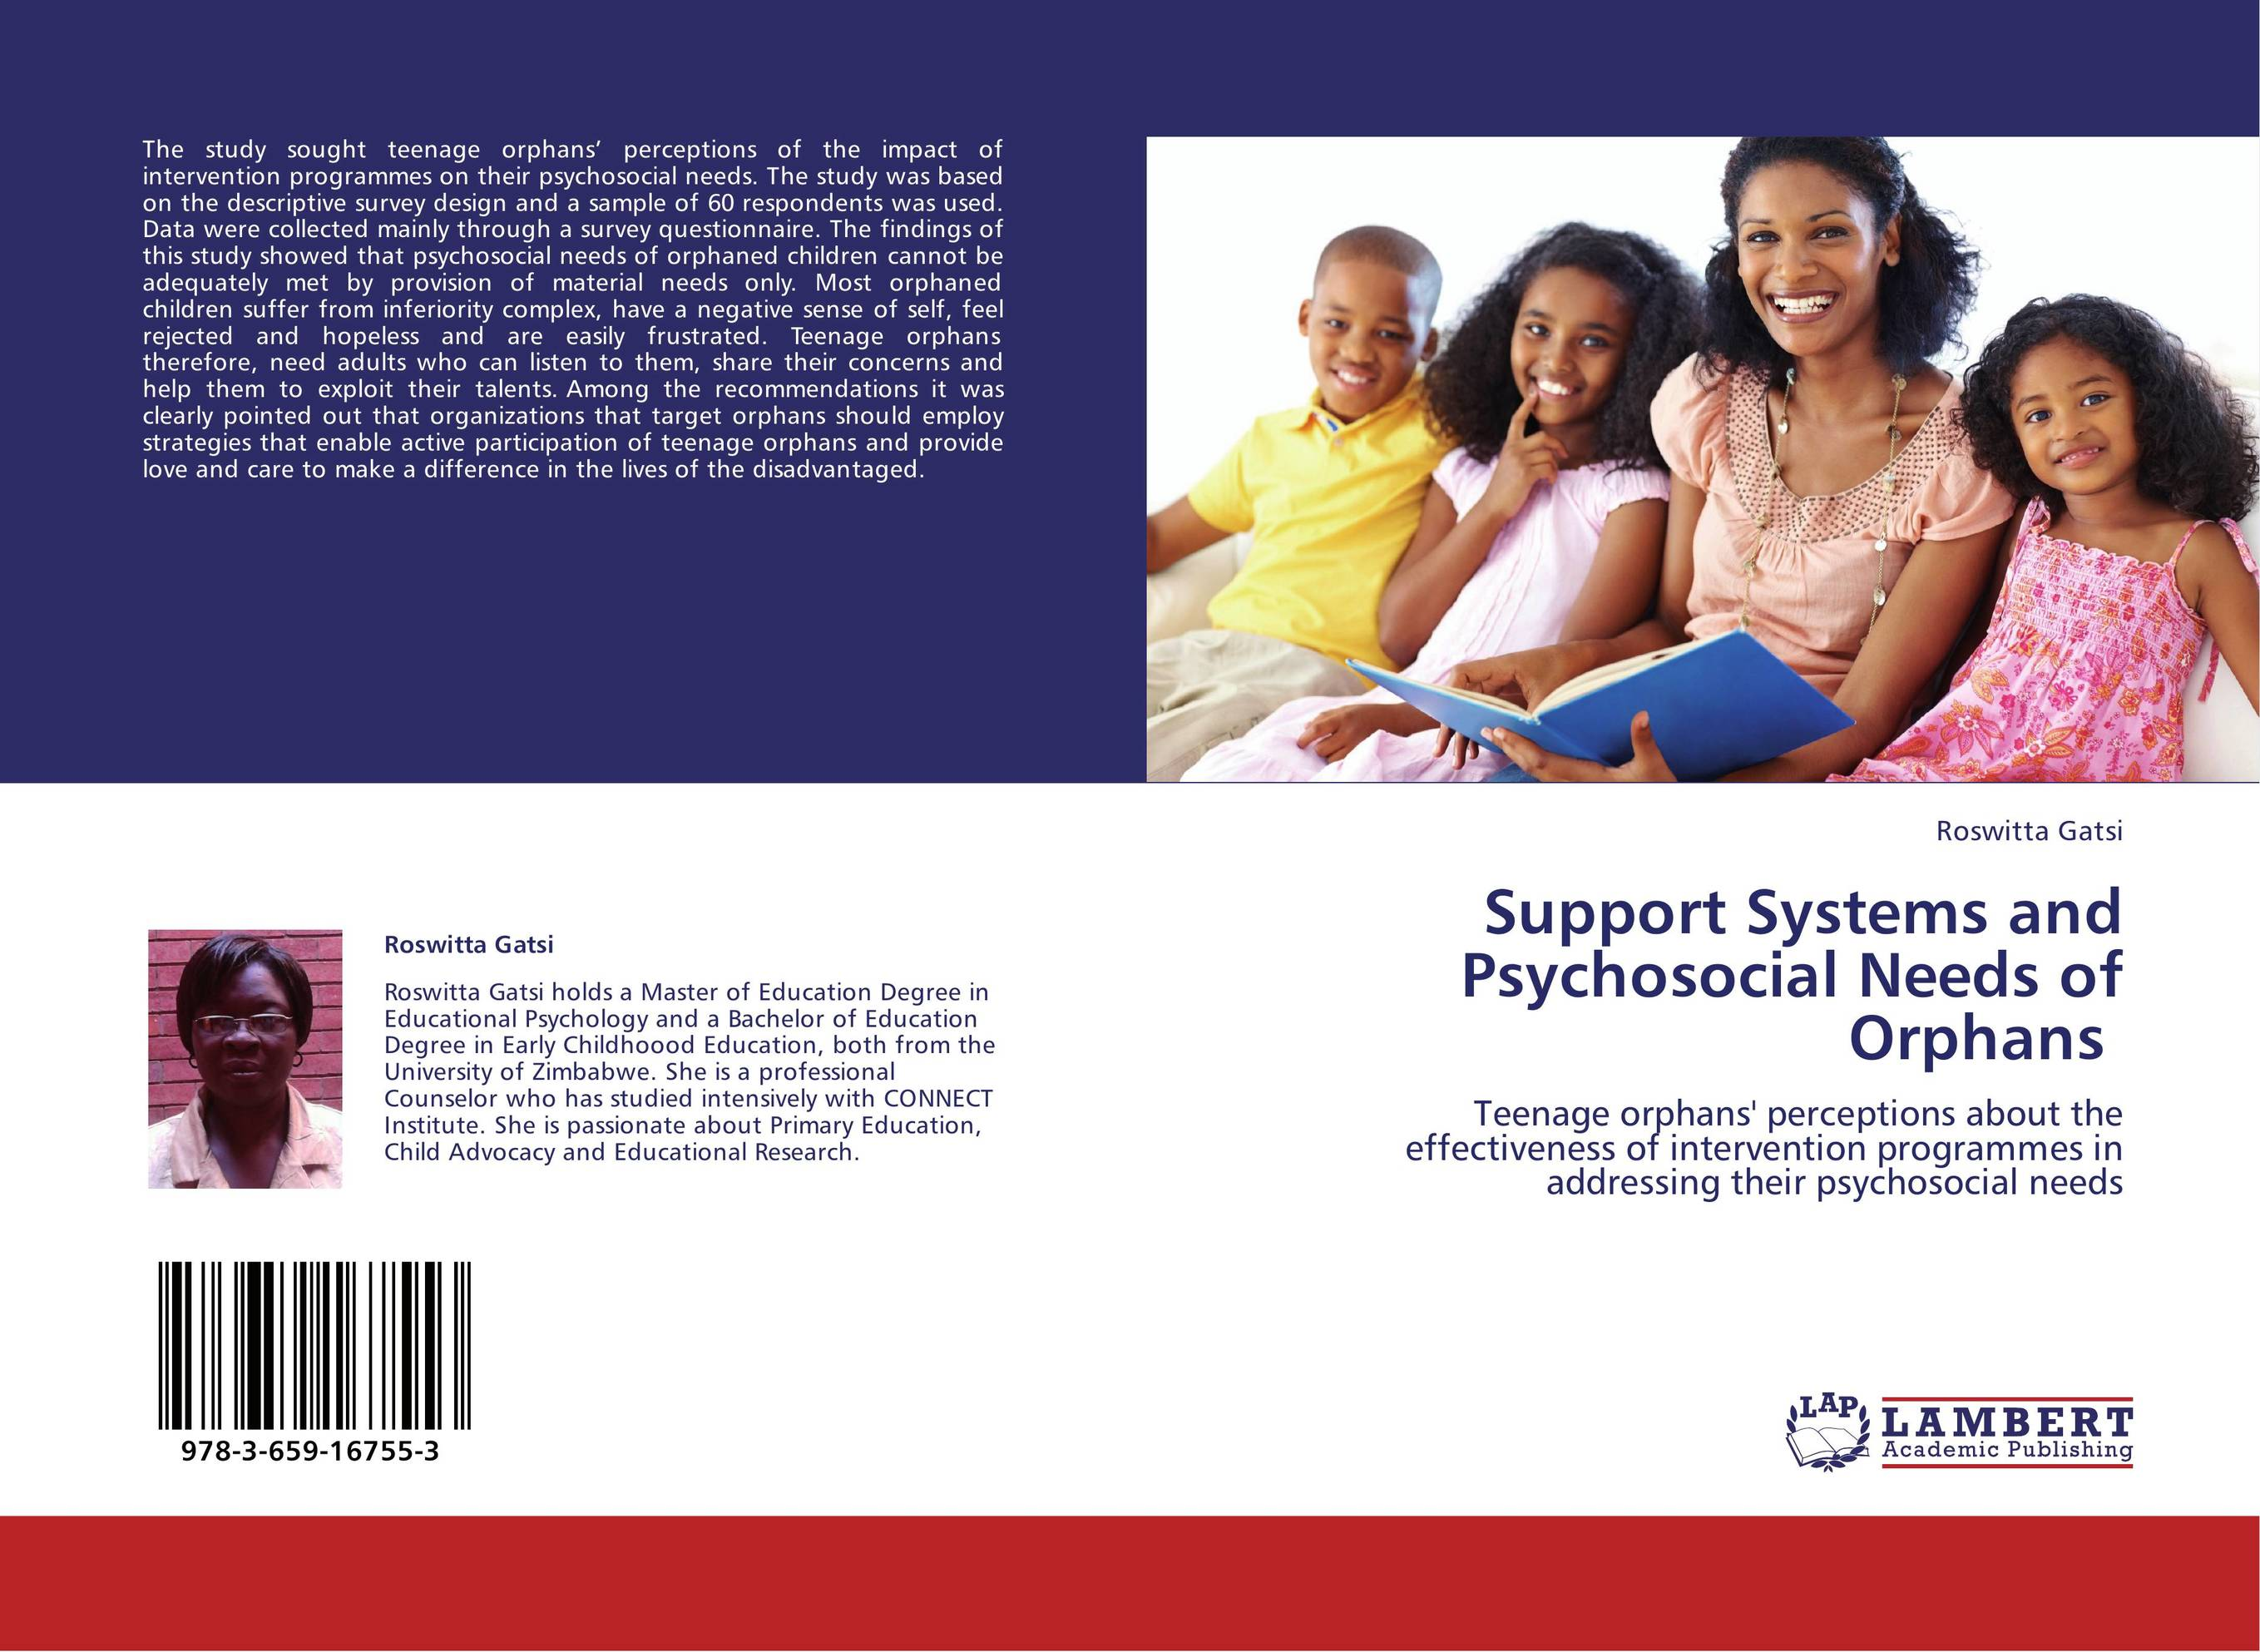 educational psychology basis for intervention program All students in the school psychology program complete a standard scientist-practitioner-oriented school these courses represent core foundational knowledge in educational psychology the following program courses reflect three areas of training: assessment, intervention, and research.